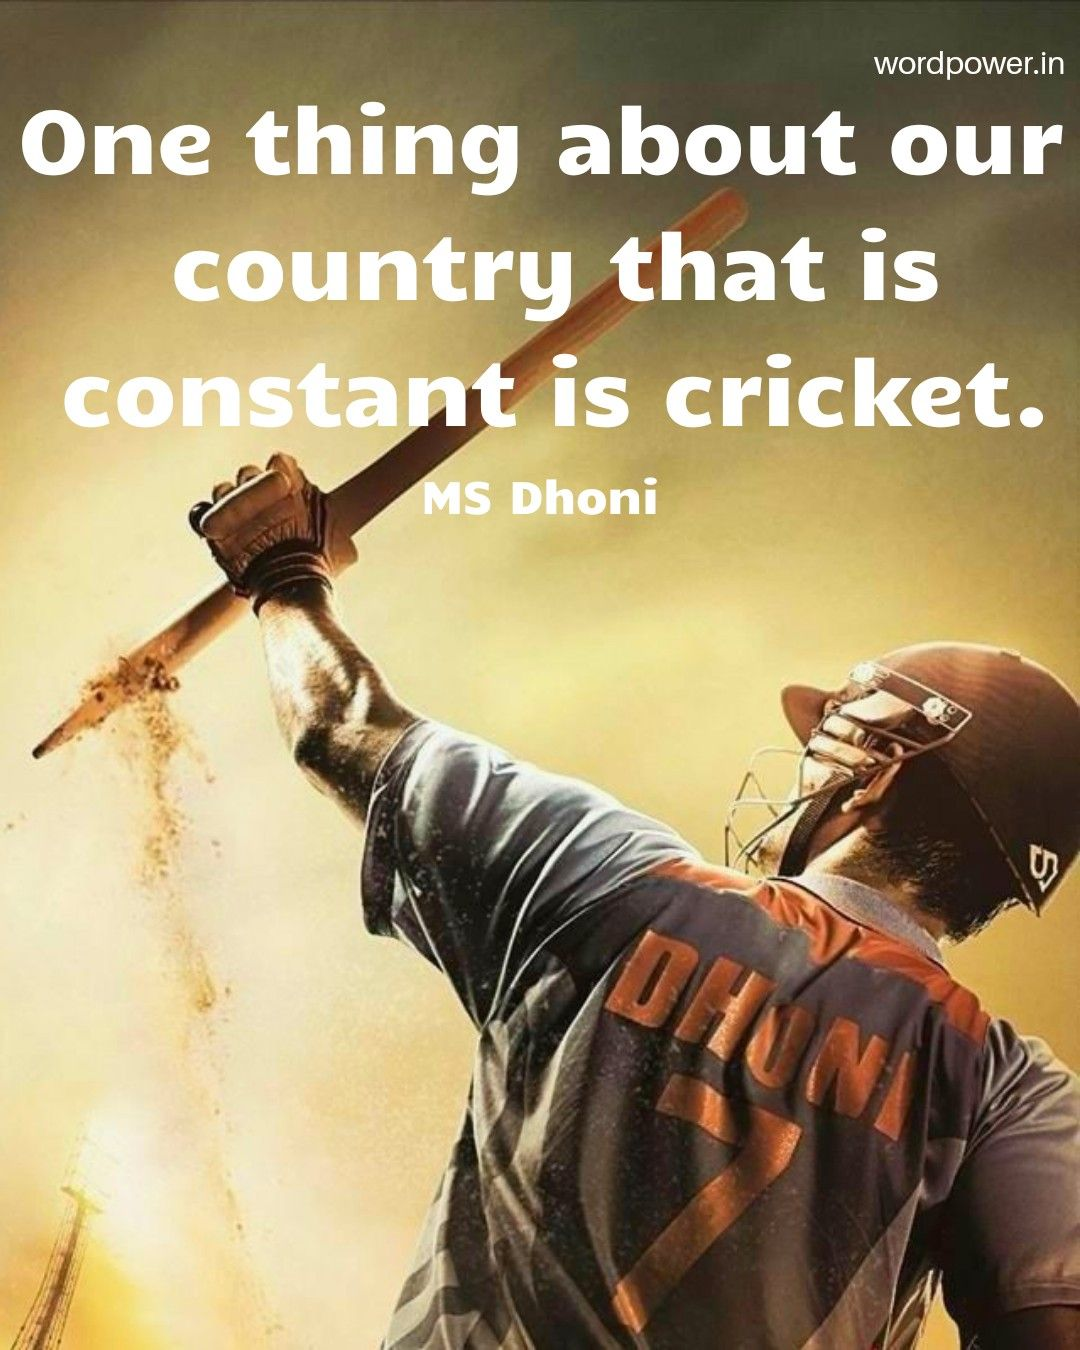 MS Dhoni Quotes Cricket Day Special Quotes